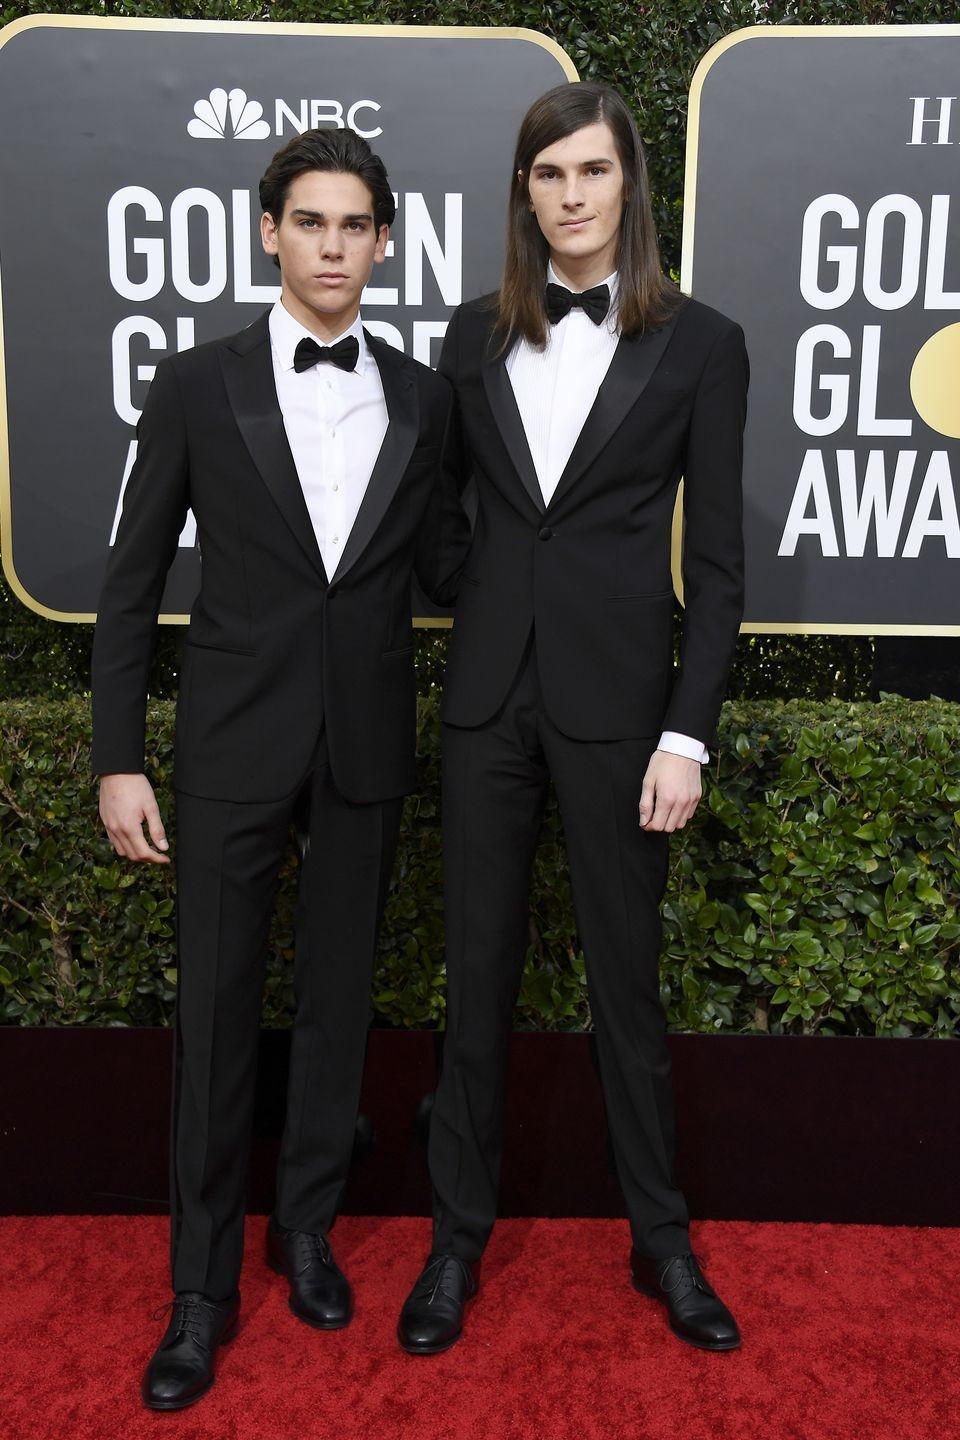 """<p>This year, Paris and Dylan Brosnan, the sons of Pierce Brosnan and Keely Shaye Smith, are serving as Golden Globes Ambassadors, the first time two brothers have been selected for the position.</p><p>""""We're proud to honor our dad's legacy as we join the incredible roster of previous Golden Globe Ambassadors, many of whom have gone on to pursue their own dreams in the entertainment industry,"""" <a href=""""https://www.hollywoodreporter.com/news/paris-dylan-brosnan-sons-pierce-brosnan-named-golden-globe-ambassadors-1254950"""" rel=""""nofollow noopener"""" target=""""_blank"""" data-ylk=""""slk:Dylan said last year, when the news that he and Paris would fill the role in 2020"""" class=""""link rapid-noclick-resp"""">Dylan said last year, when the news that he and Paris would fill the role in 2020</a>. </p><p>""""The biggest lesson our dad taught us is to 'be kind,' which was an essential factor in Paris and my decision to study filmmaking and our desire to tell important stories. Having this opportunity to turn the spotlight outward on kids experiencing hunger is a true privilege.""""</p>"""